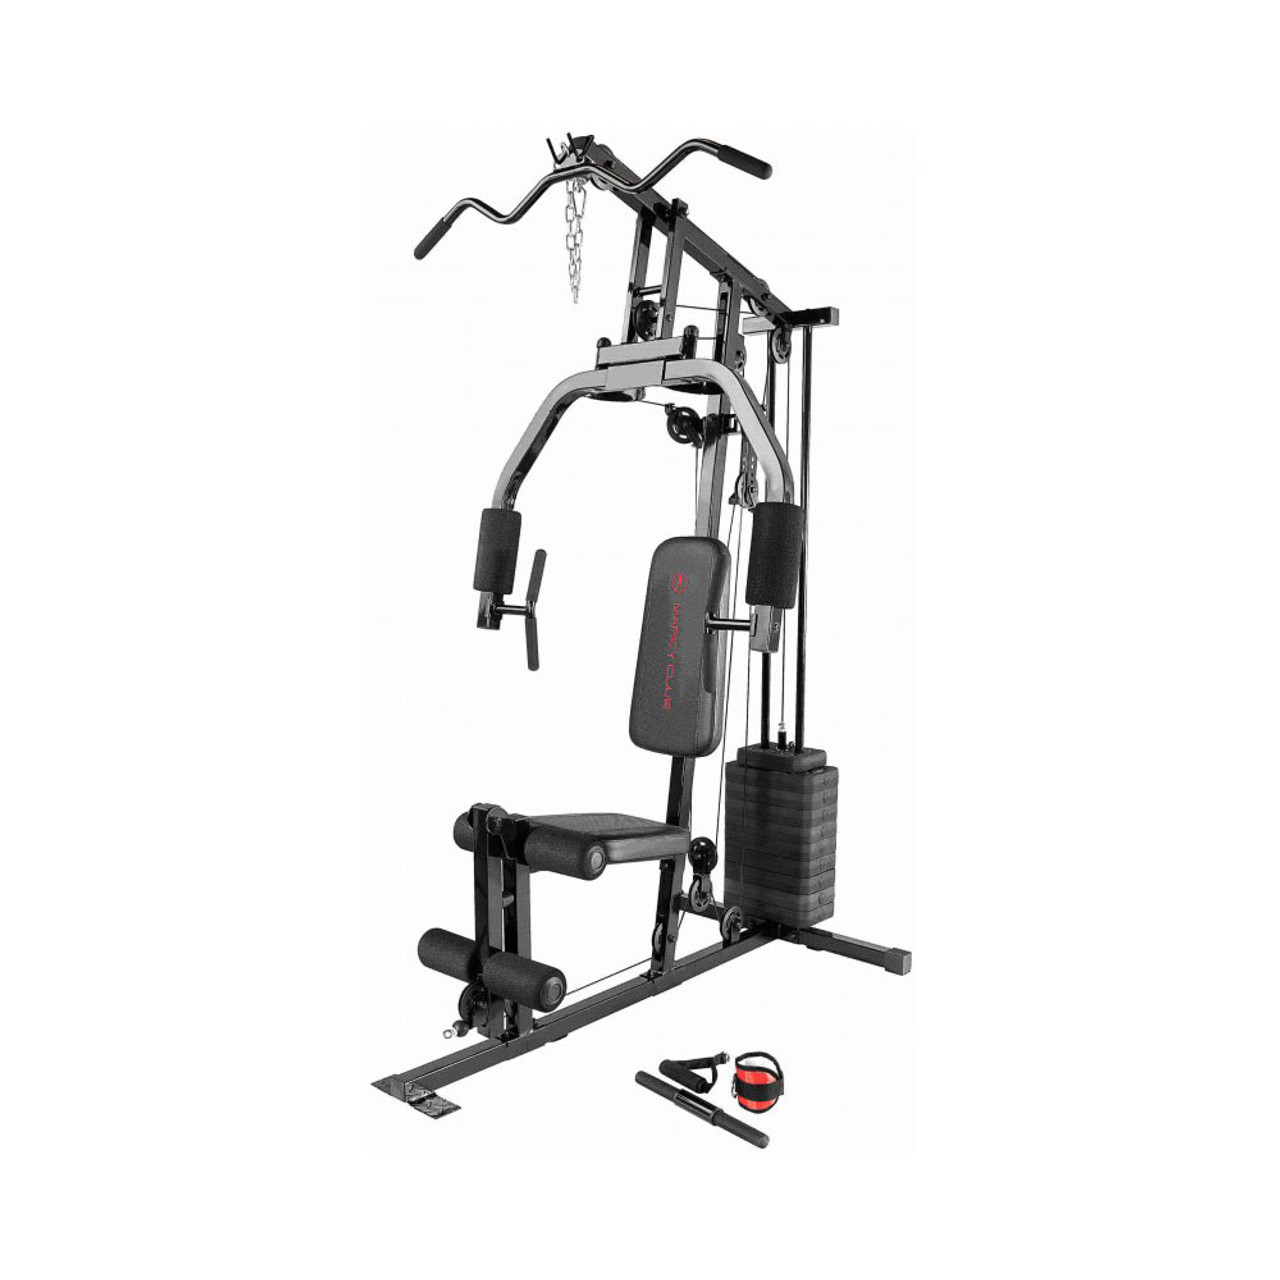 The Marcy 100 lb. Stack Home Gym MKM-81030 is essential for creating the